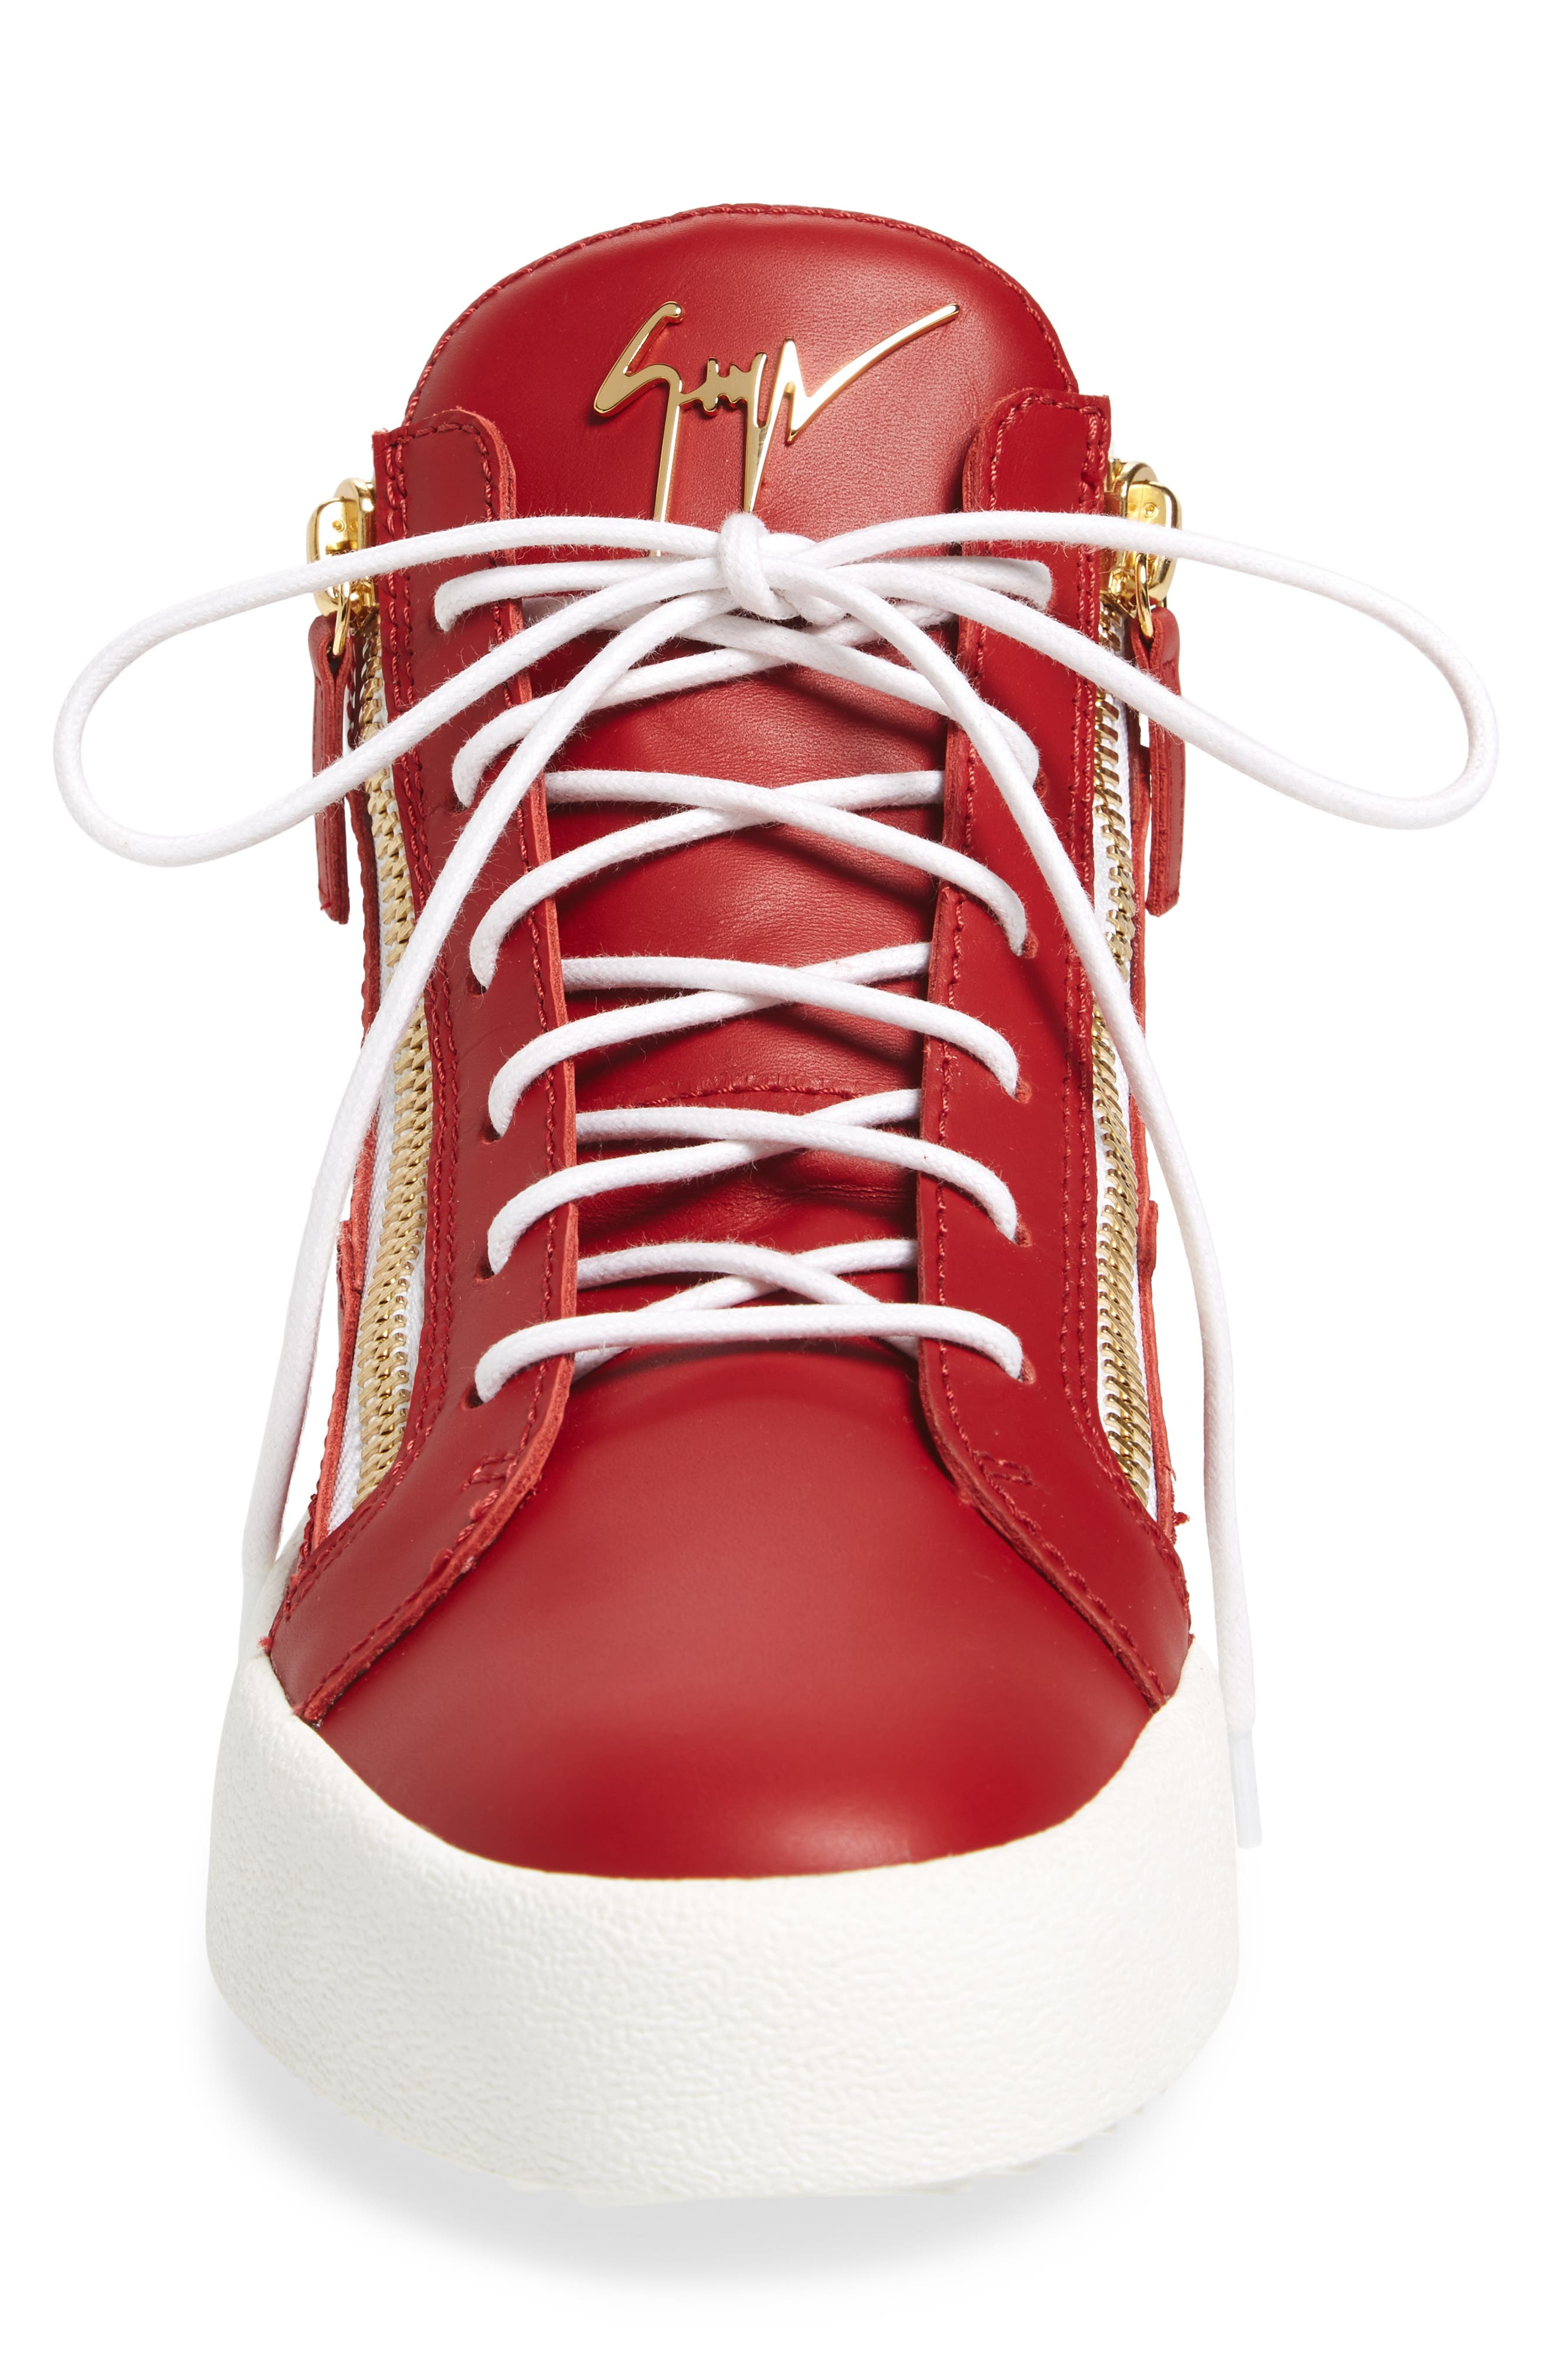 Double Zipper Mid Top Sneaker,                             Alternate thumbnail 4, color,                             Red W/ White Leather